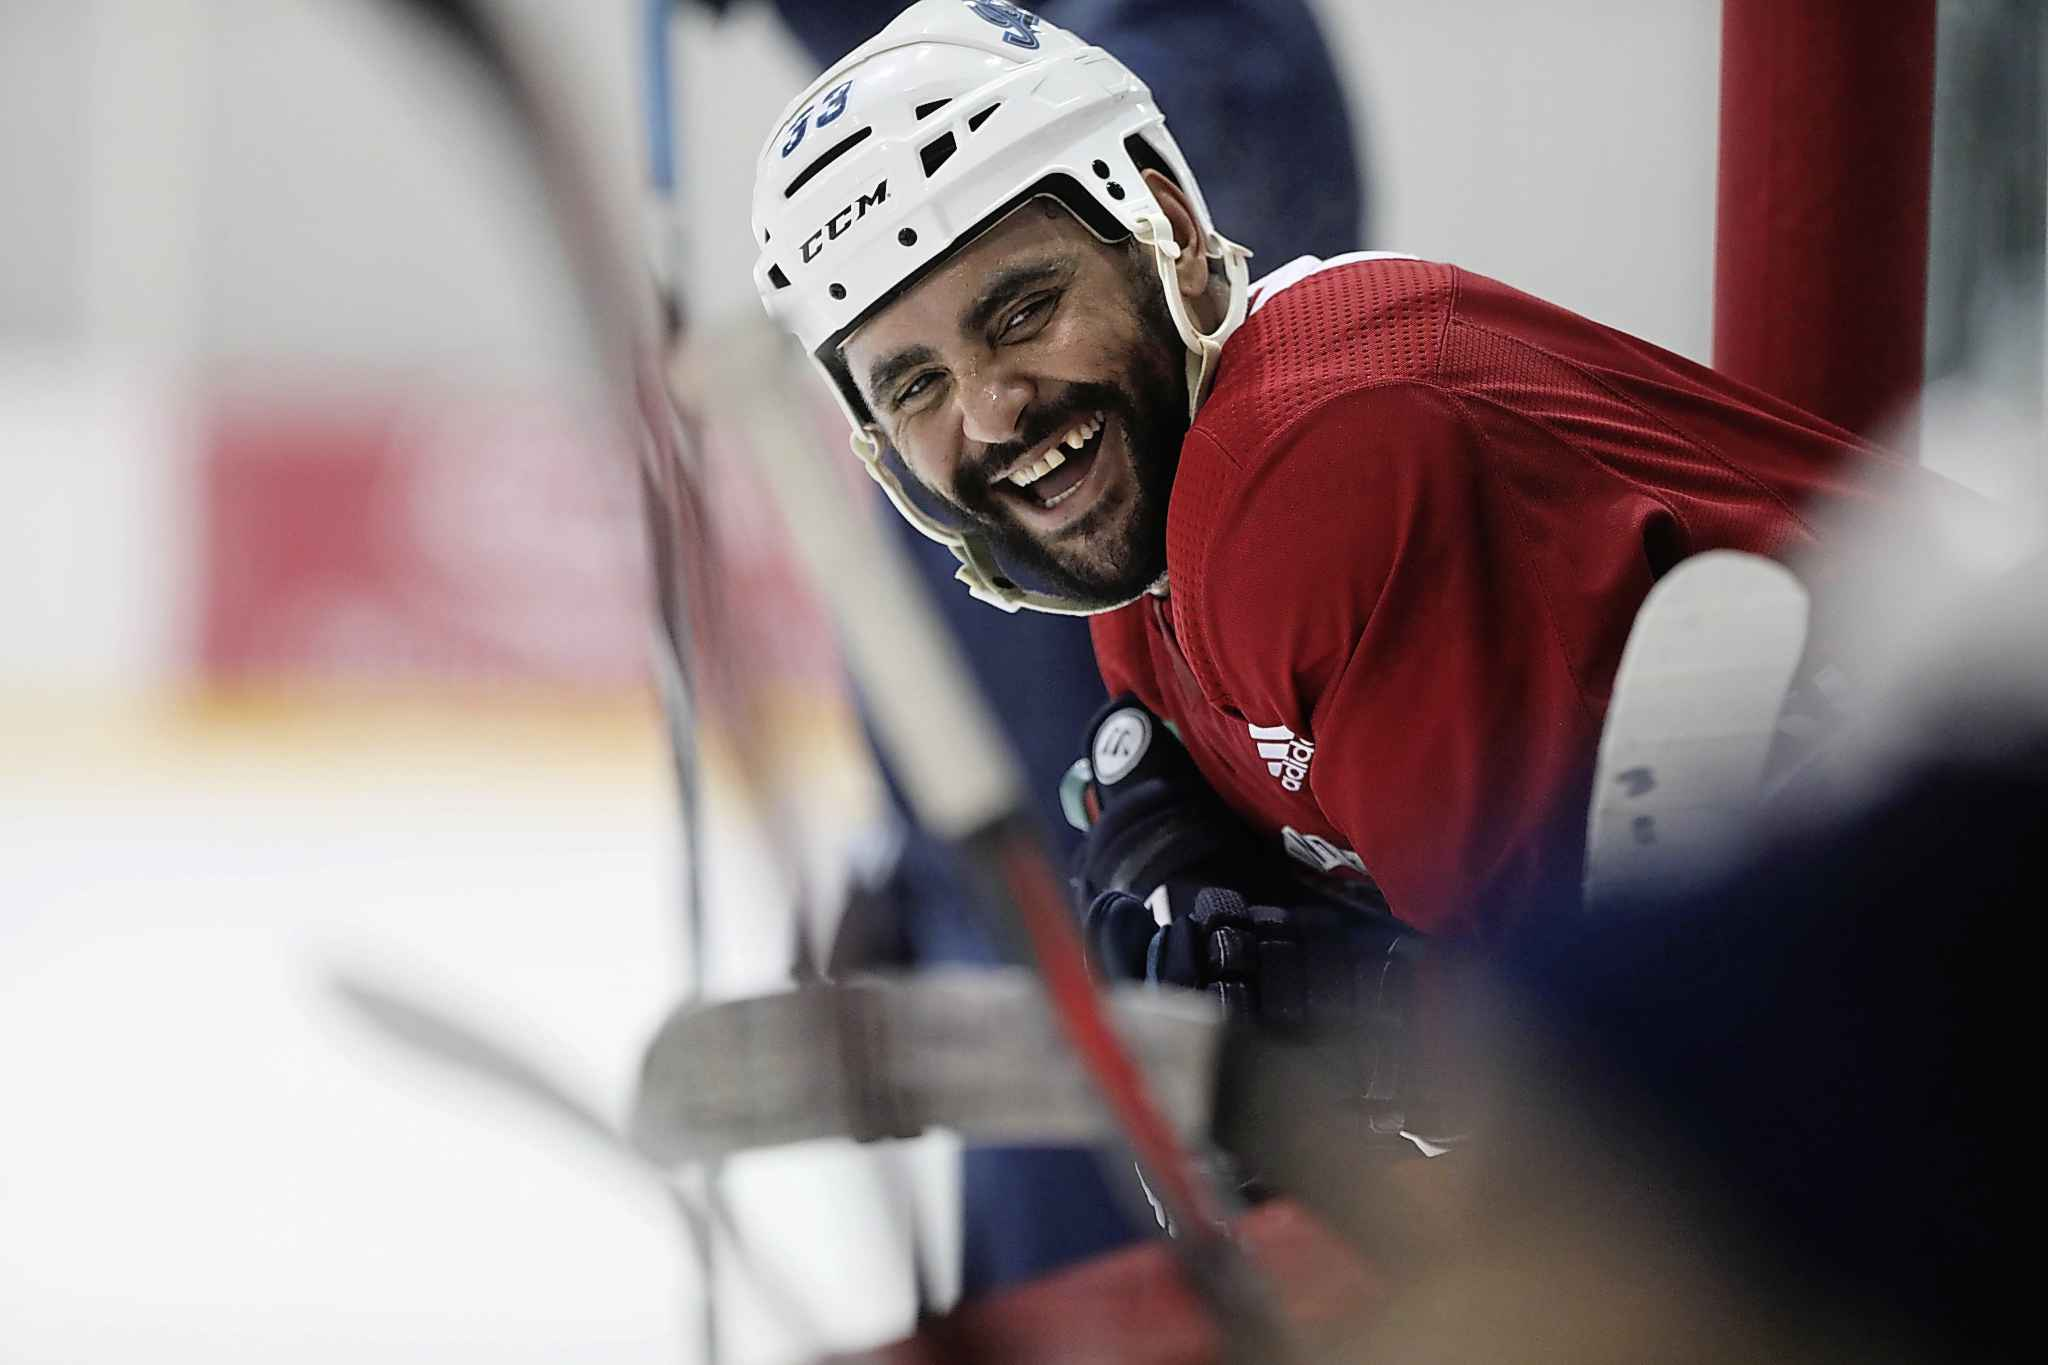 As far as NHL players go, Byfuglien has always marched to his own beat.